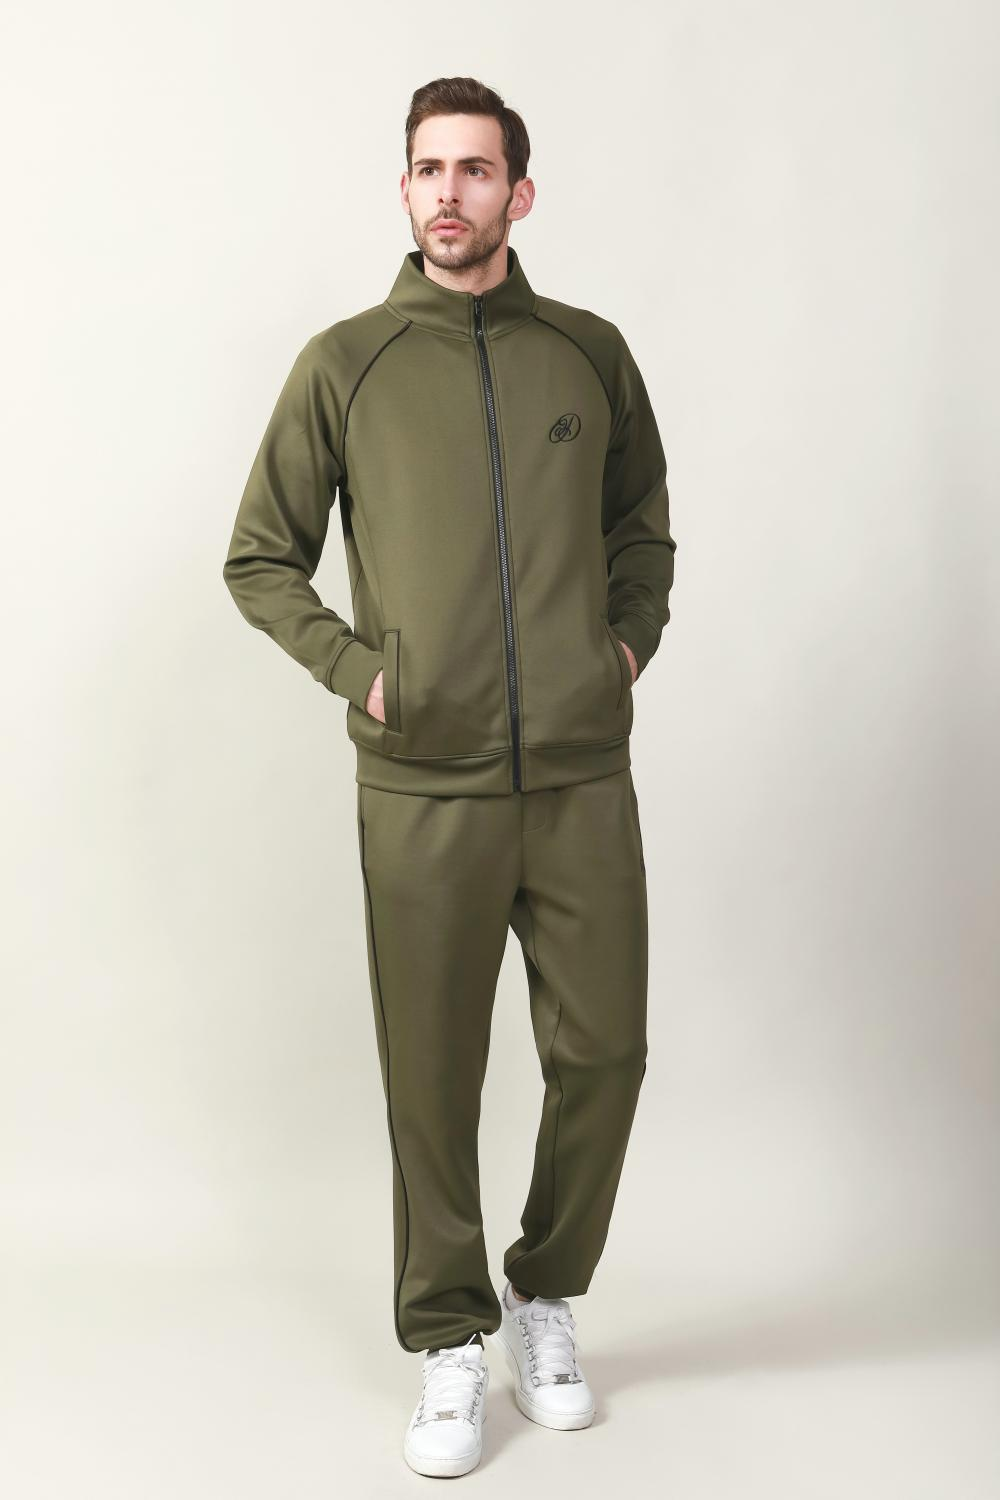 Men's interlock fabric jkt